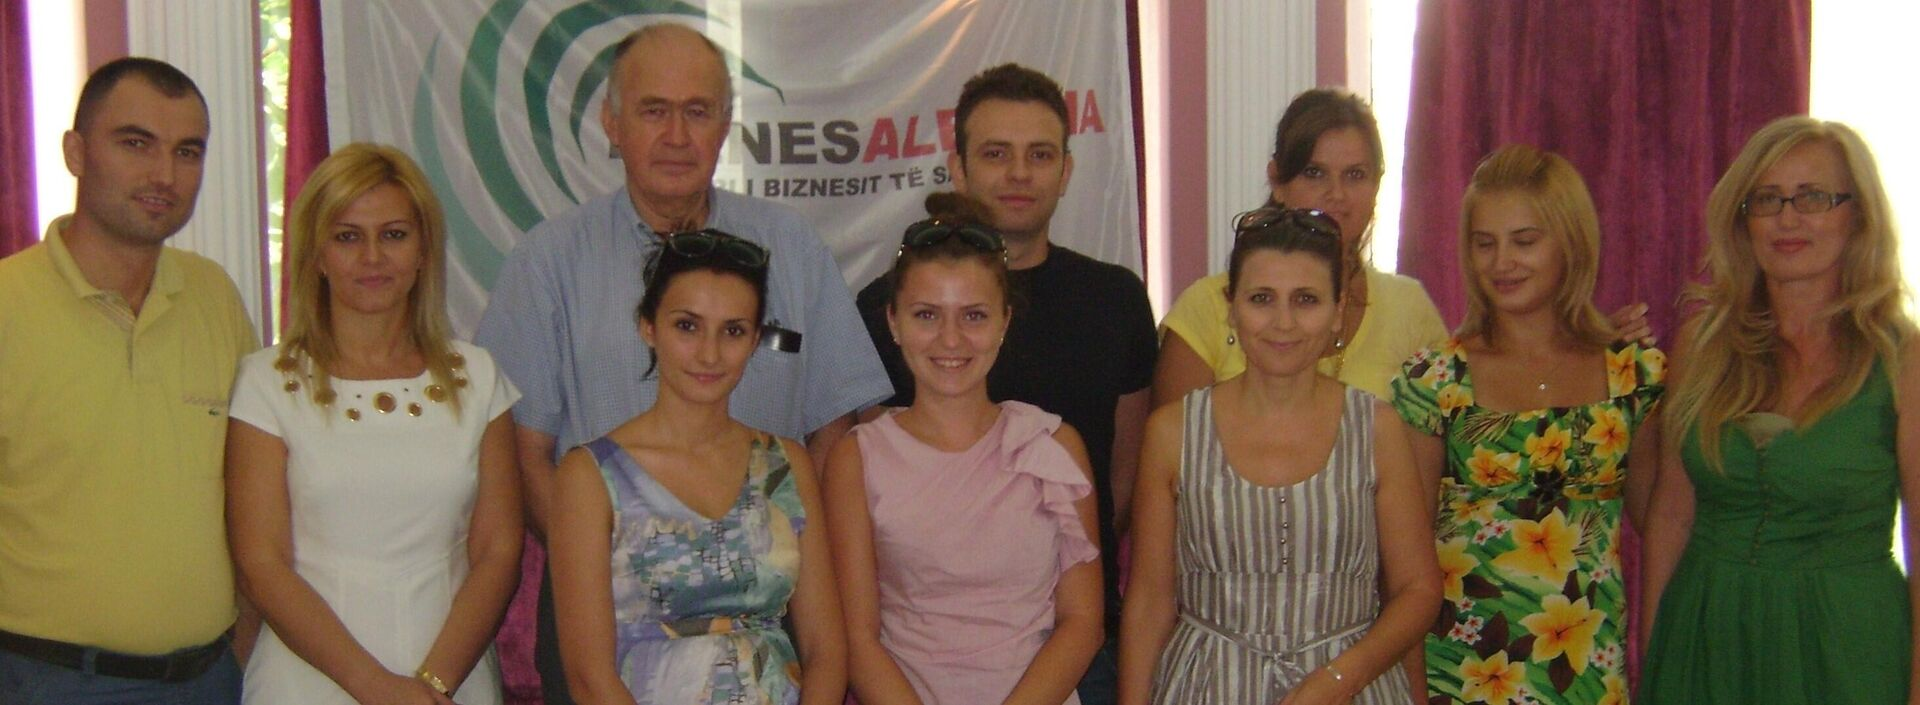 DECP and BiznesAlbania step up their cooperation